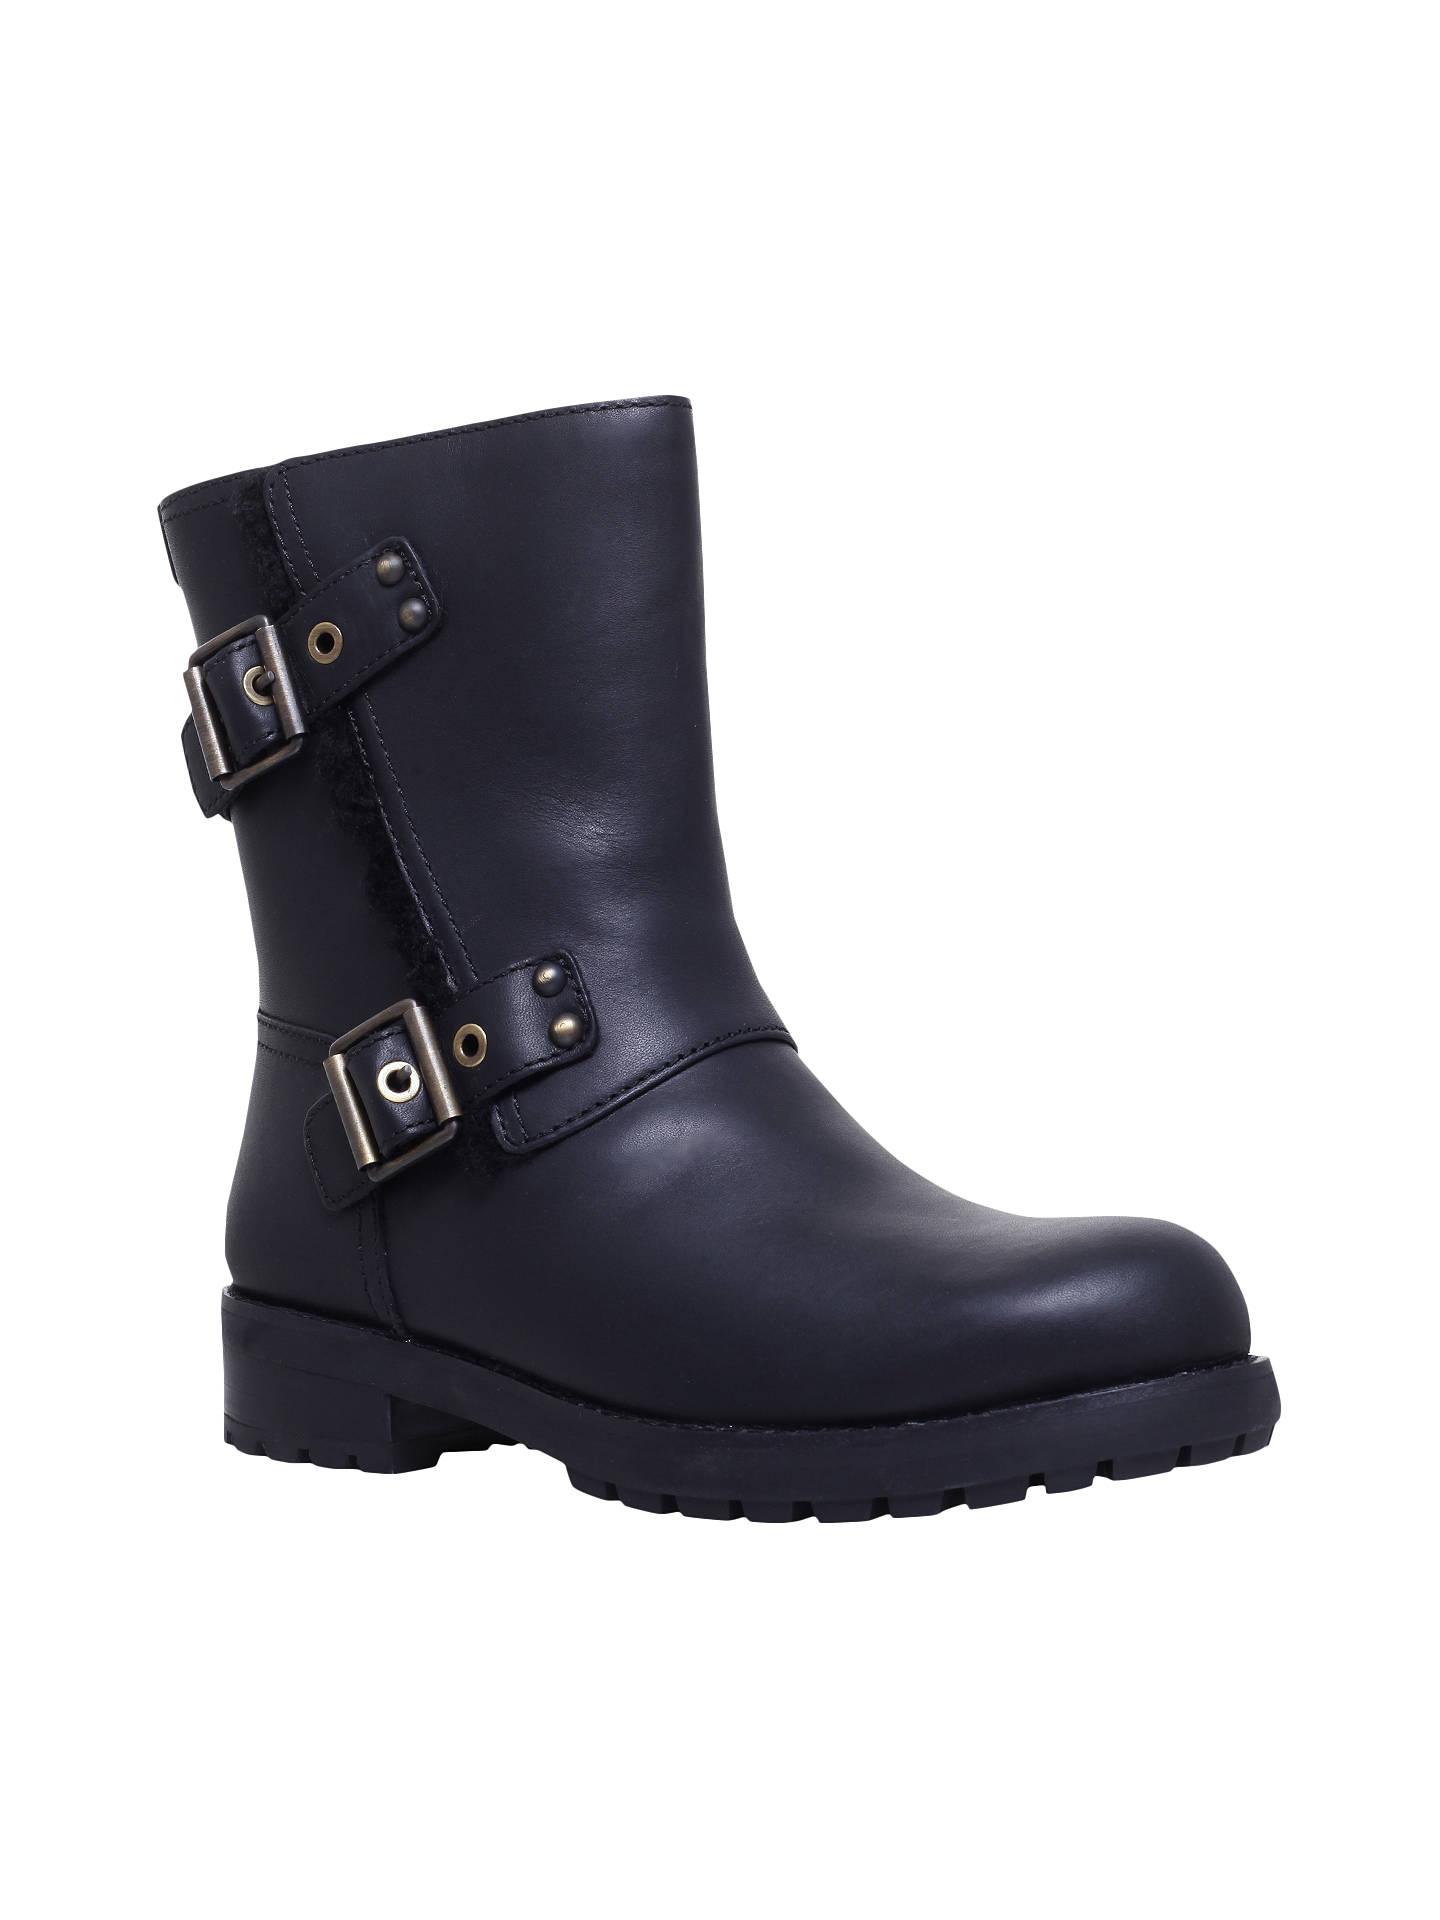 4b4be524e58 UGG Niels Calf High Boots, Black Leather at John Lewis & Partners